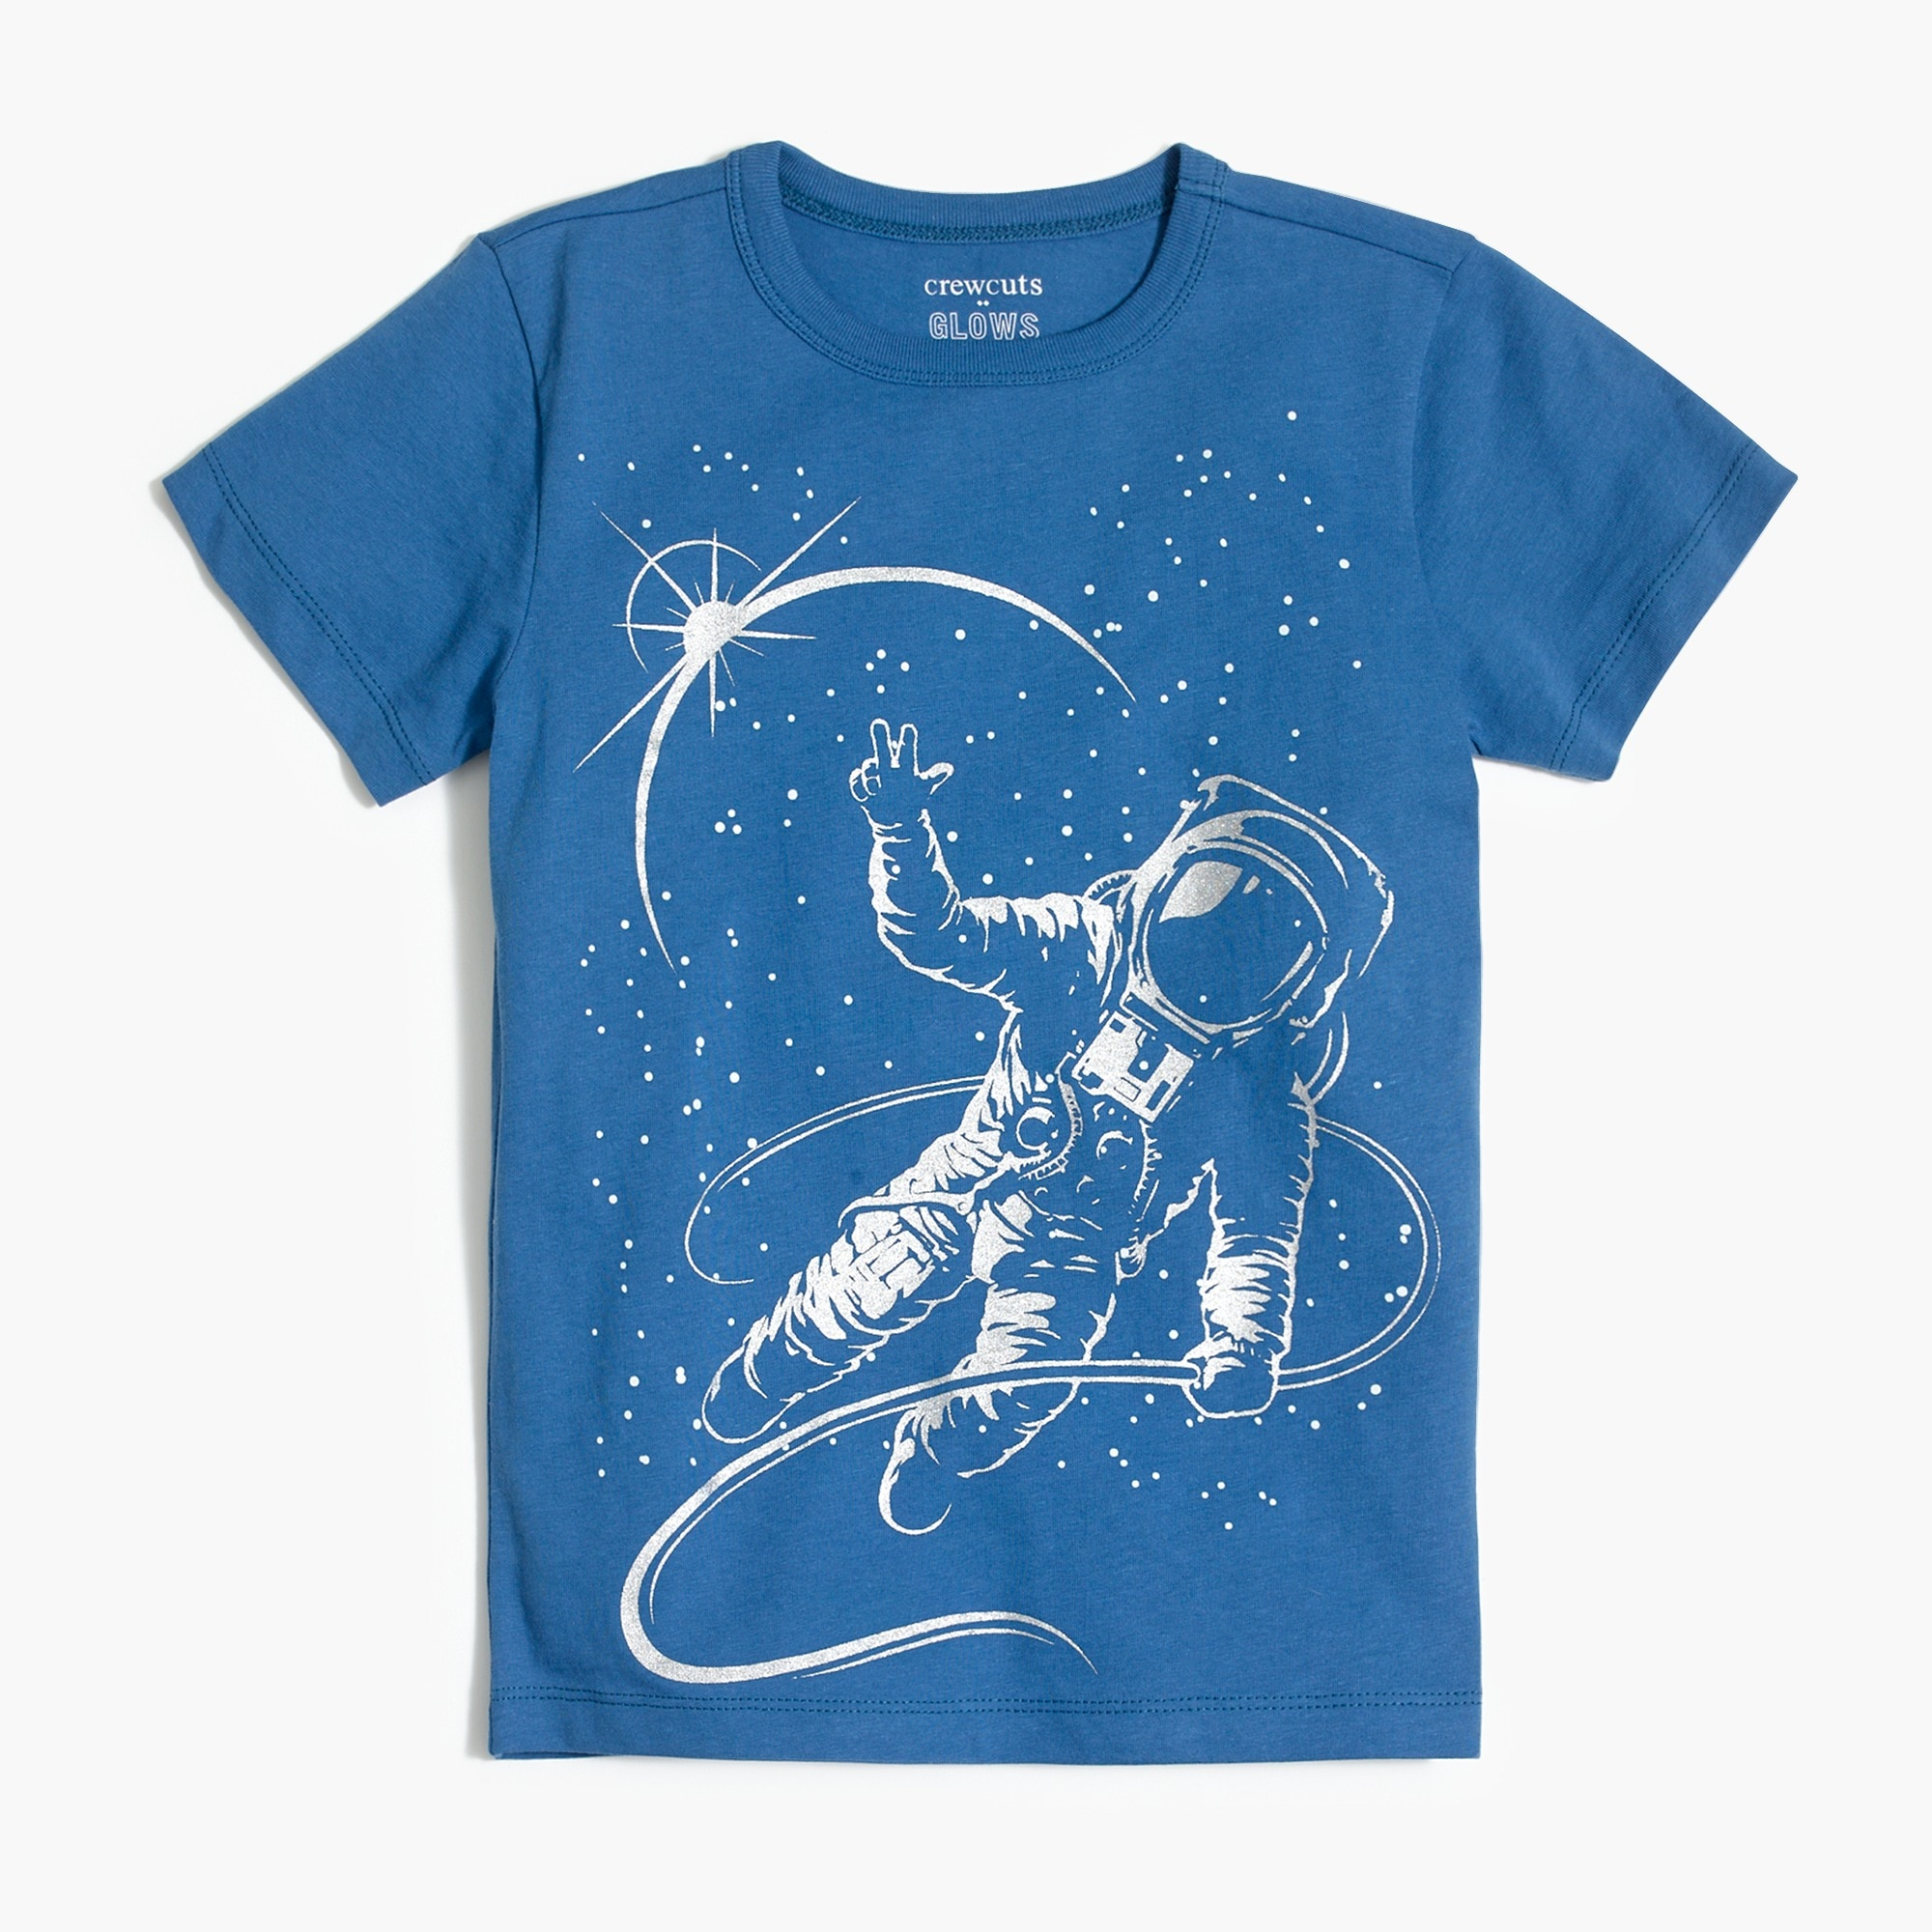 Image 1 for Boys' glow-in-the-dark astronaut graphic T-shirt